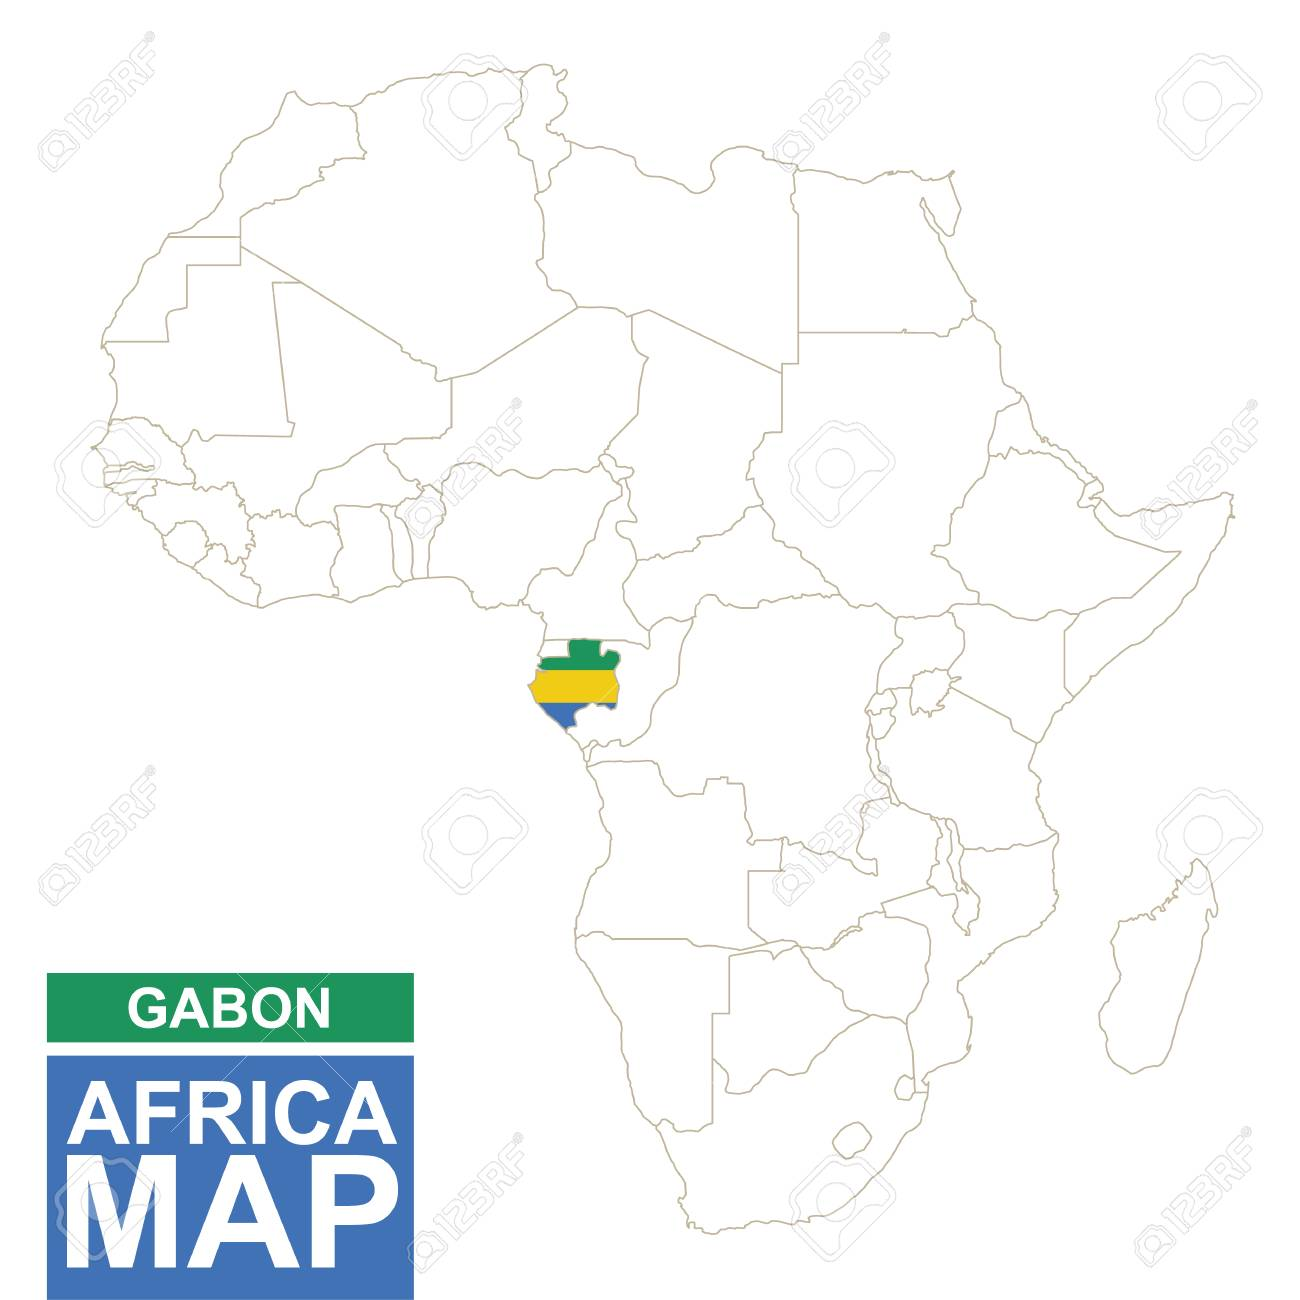 Africa Contoured Map With Highlighted Gabon Gabon Map And Flag